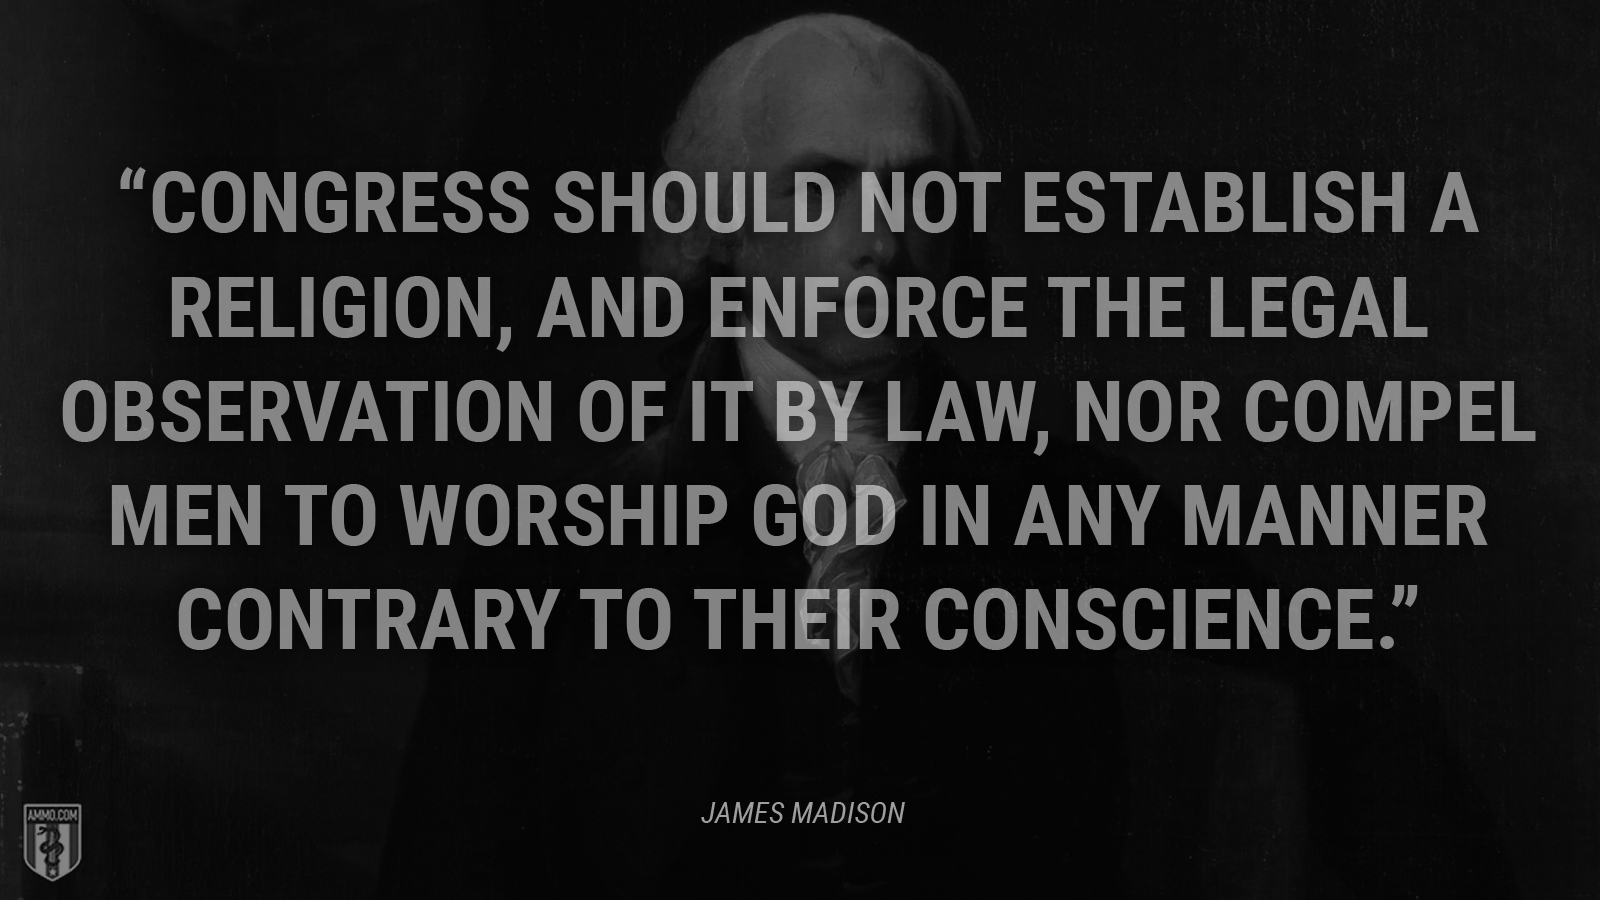 """Congress should not establish a religion, and enforce the legal observation of it by law, nor compel men to worship God in any Manner contrary to their conscience."" - James Madison"